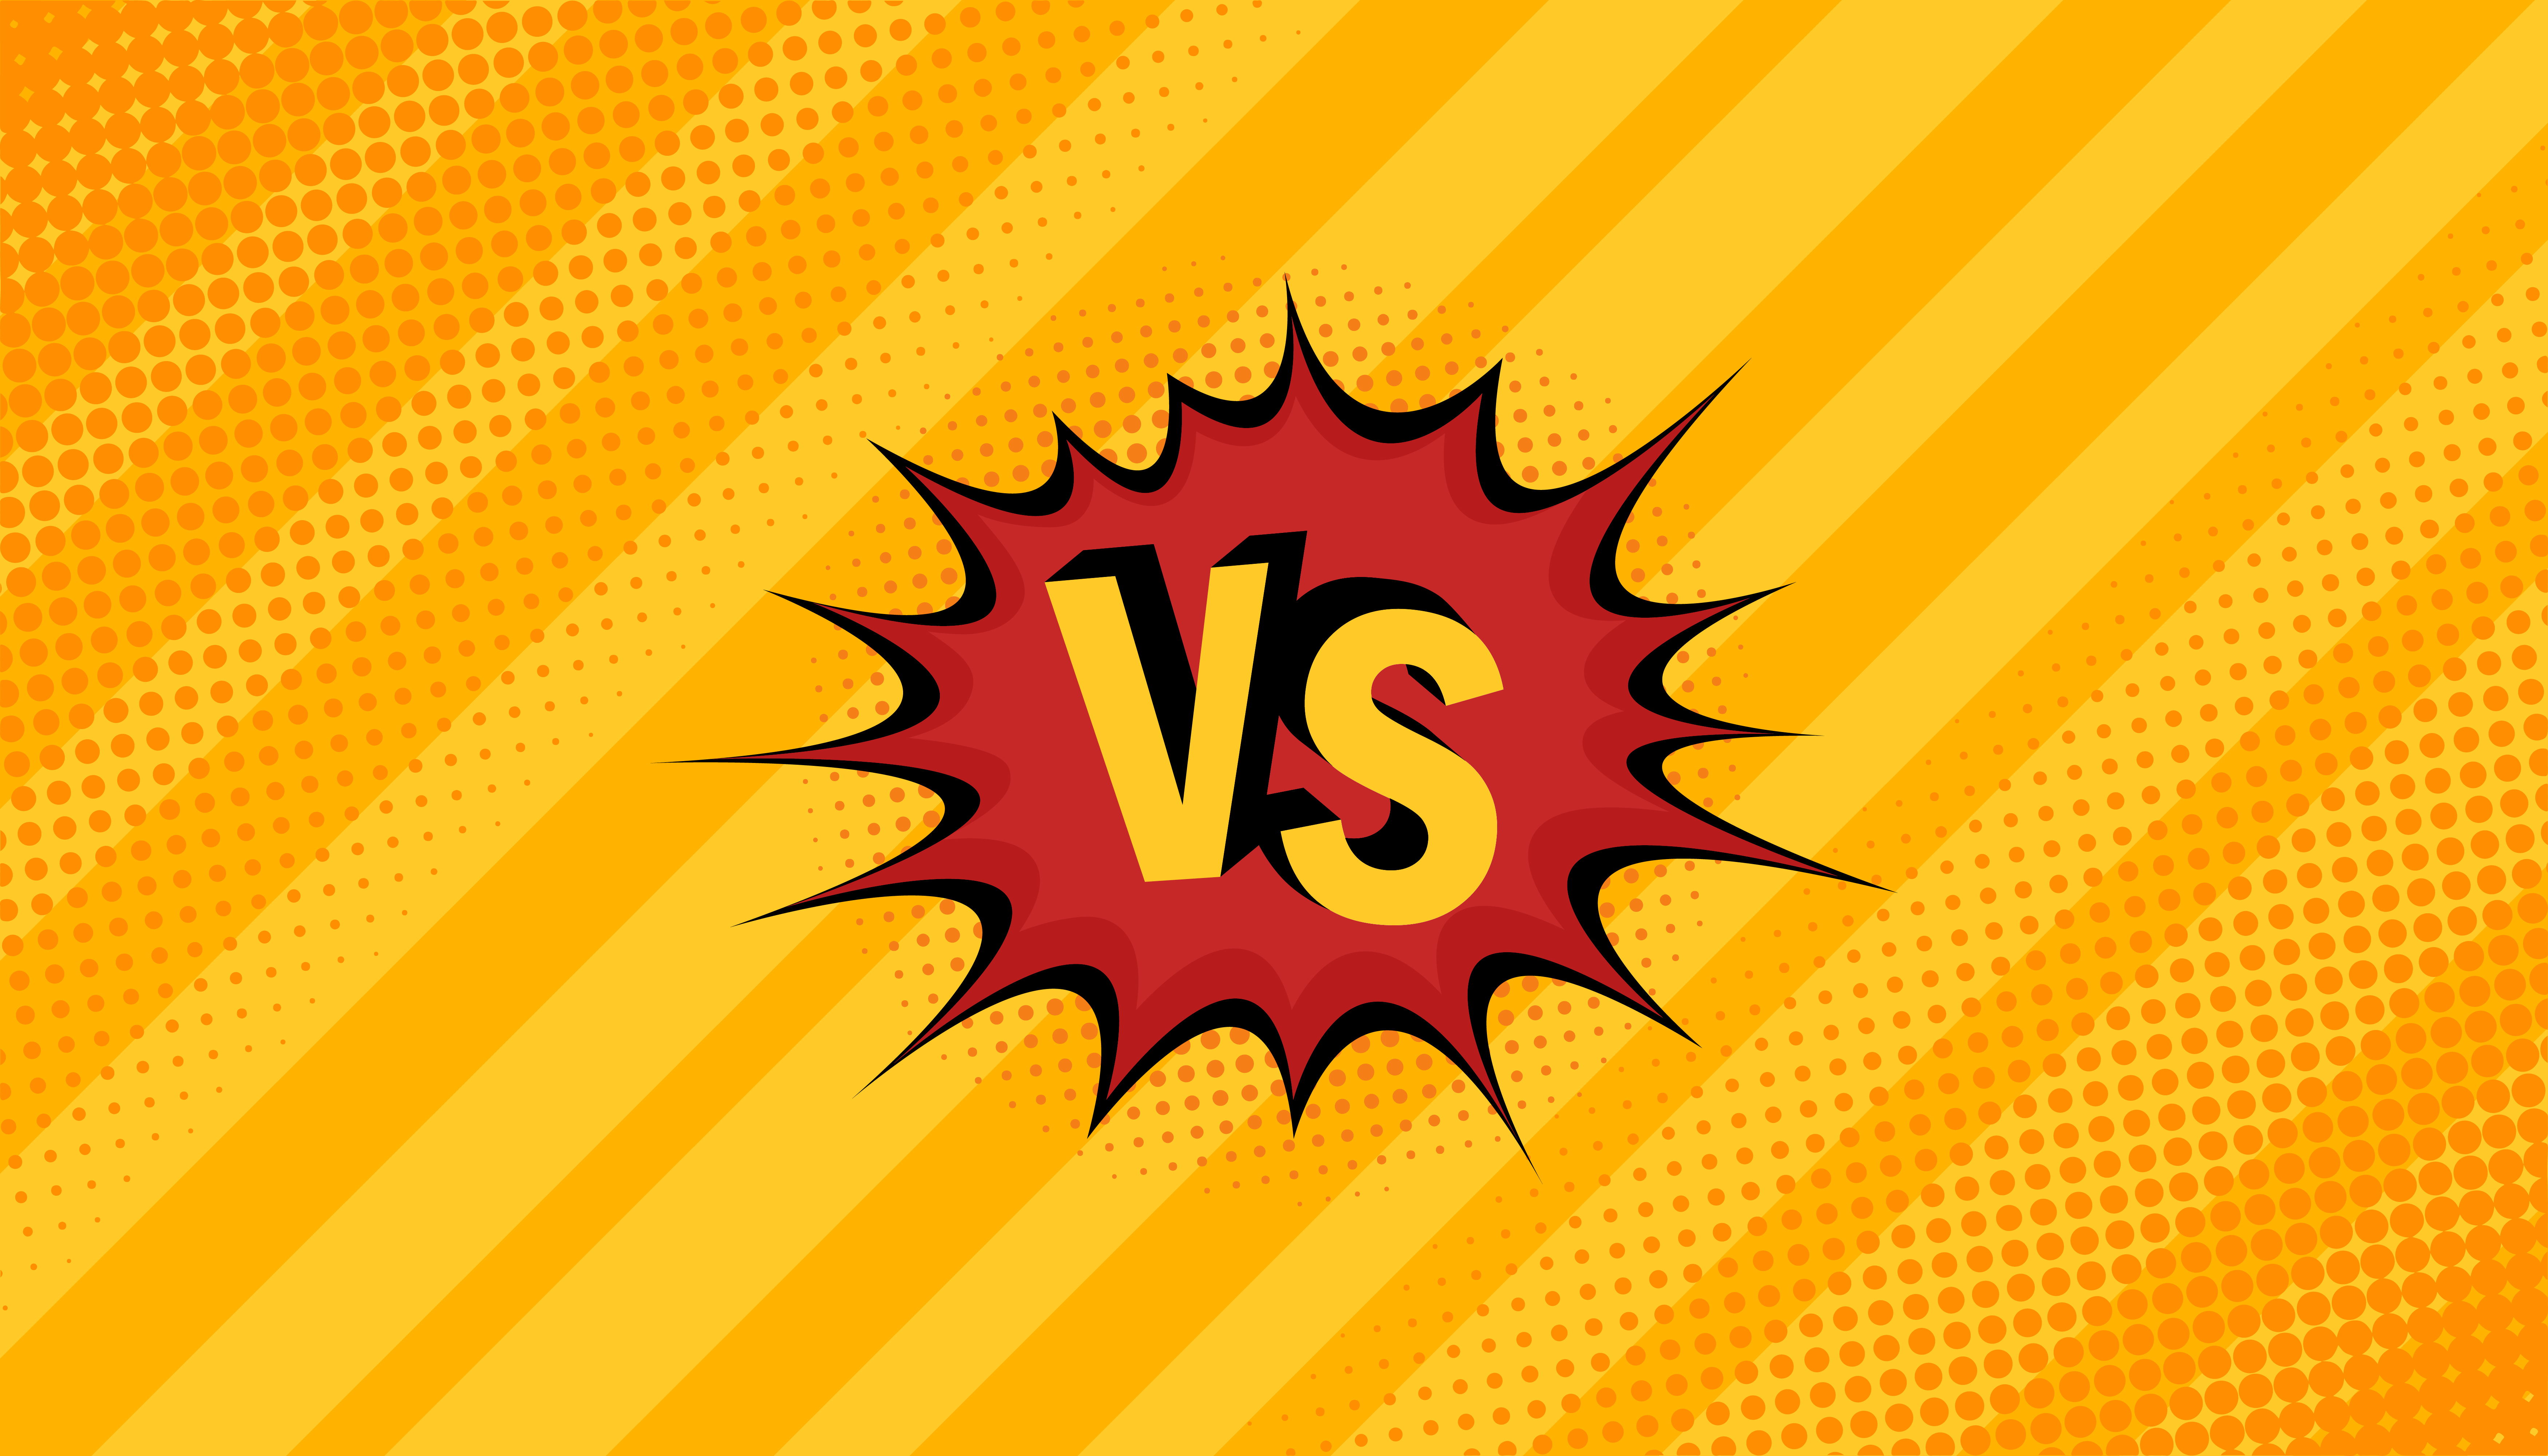 Online Learning vs Event-Based In-Person Learning